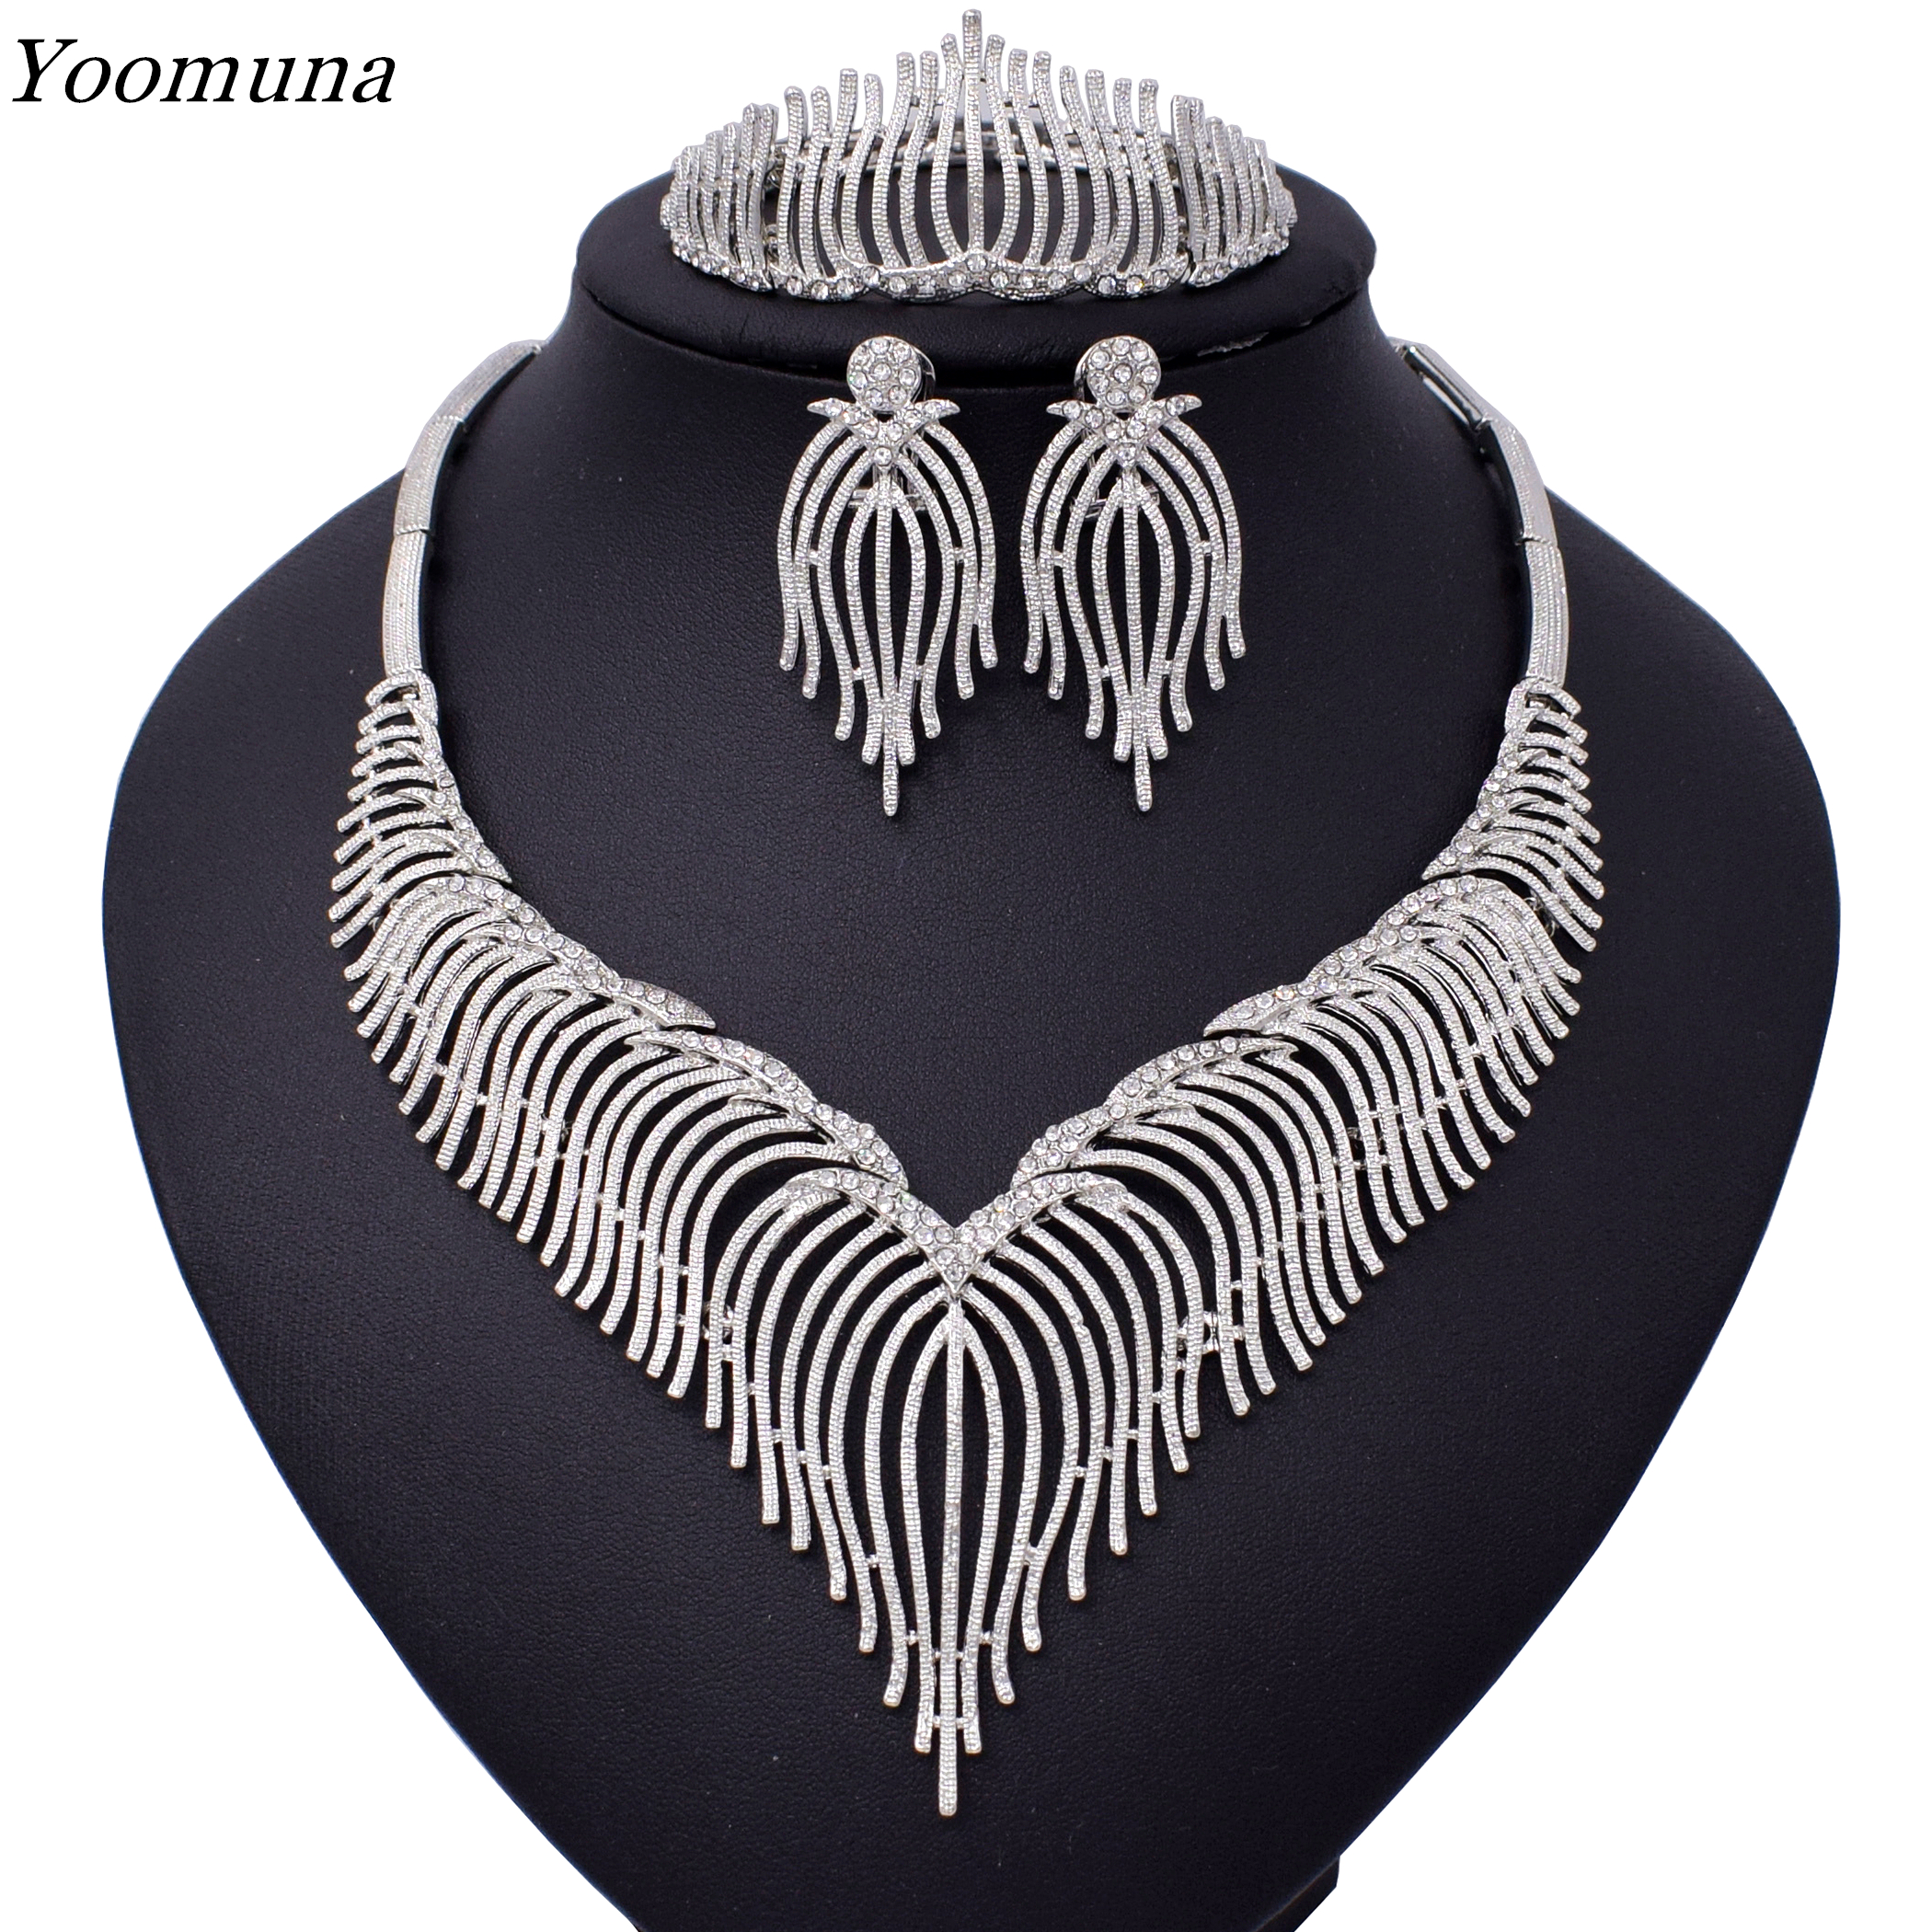 Luxury silver Jewelry sets For Women Wedding Cubic Zirconia Flower African Beads Jewelry Sets <font><b>Indian</b></font> bridal jewelry set 2019 image